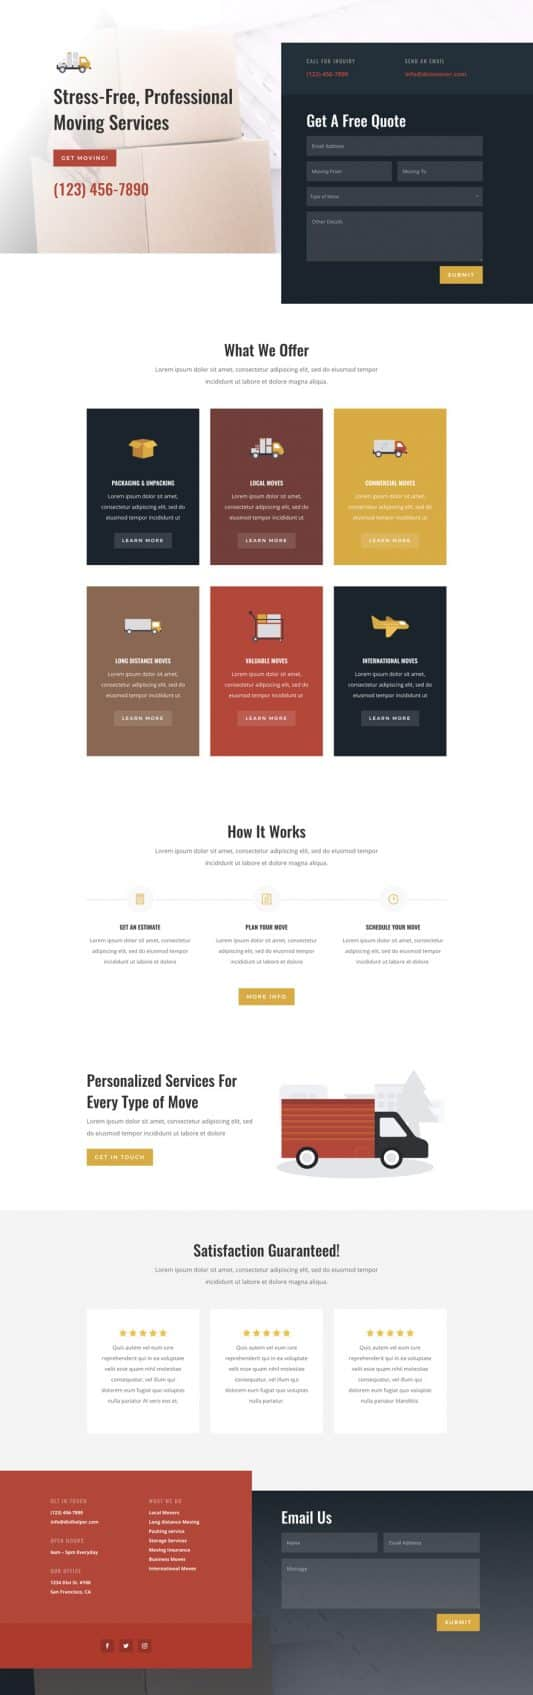 The Moving Company Page Style: Homepage Design 1